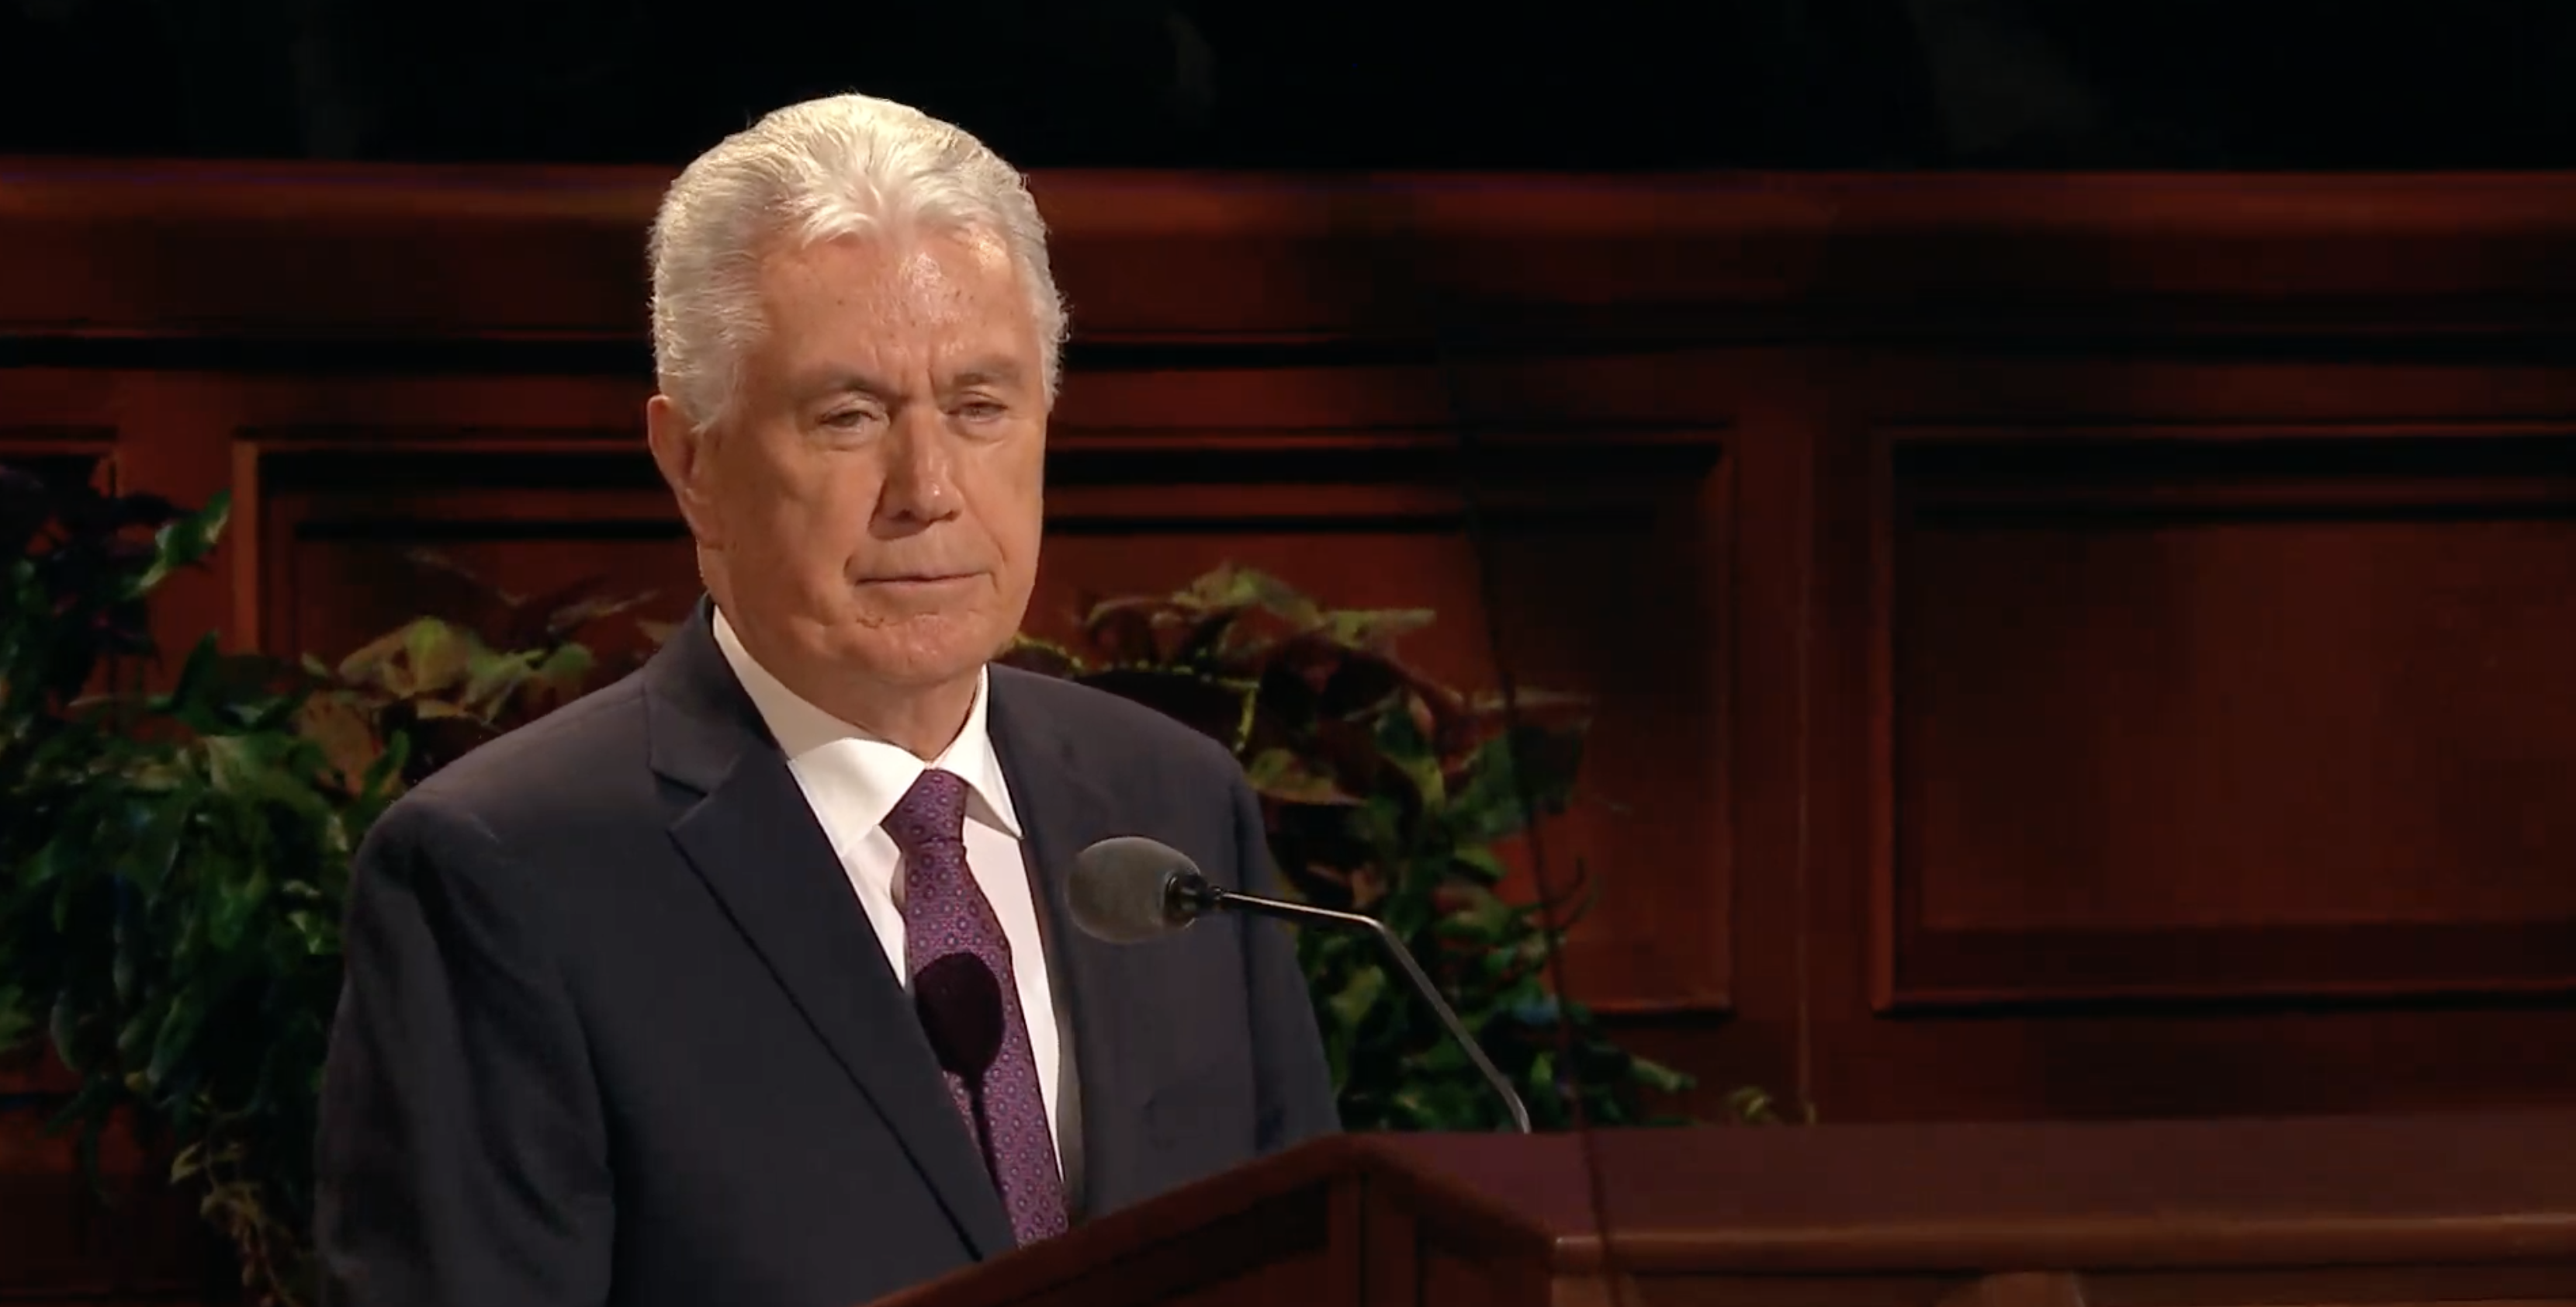 Elder Dieter F. Uchtdorf of the Quorum of the Twelve Apostles speaks during the Sunday morning session in the 189th Semiannual General Conference of the Church on Oct. 6, 2019.